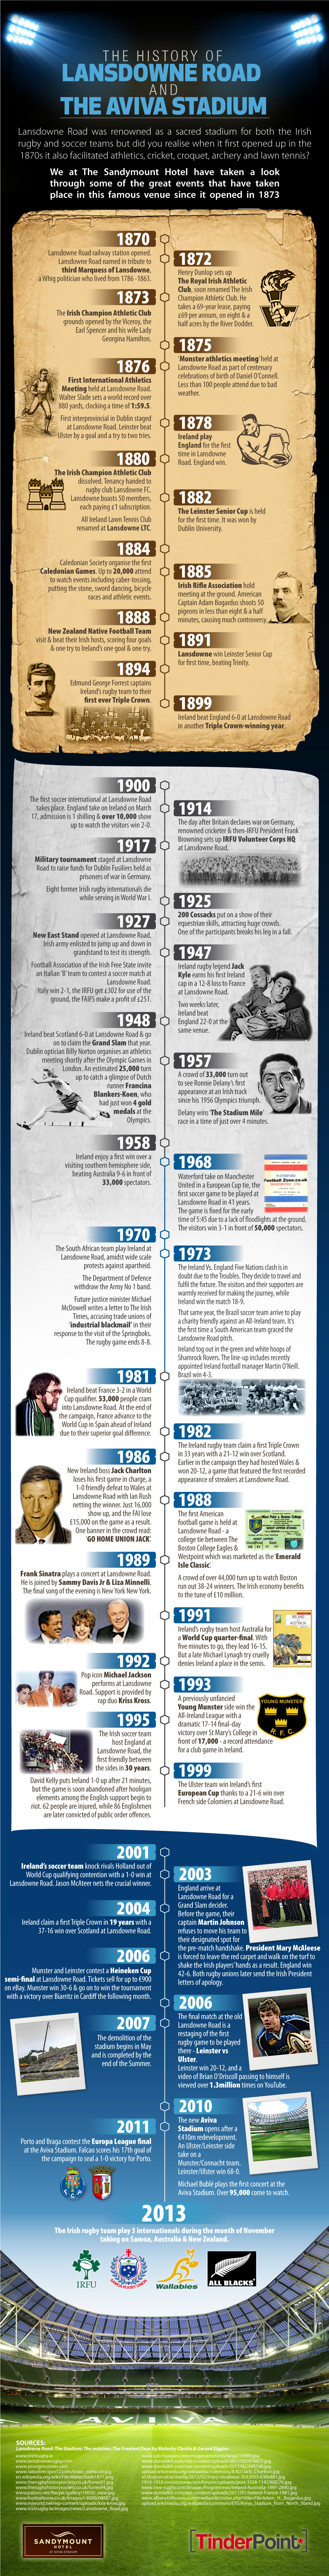 The History of Lansdowne Road and The Aviva Stadium